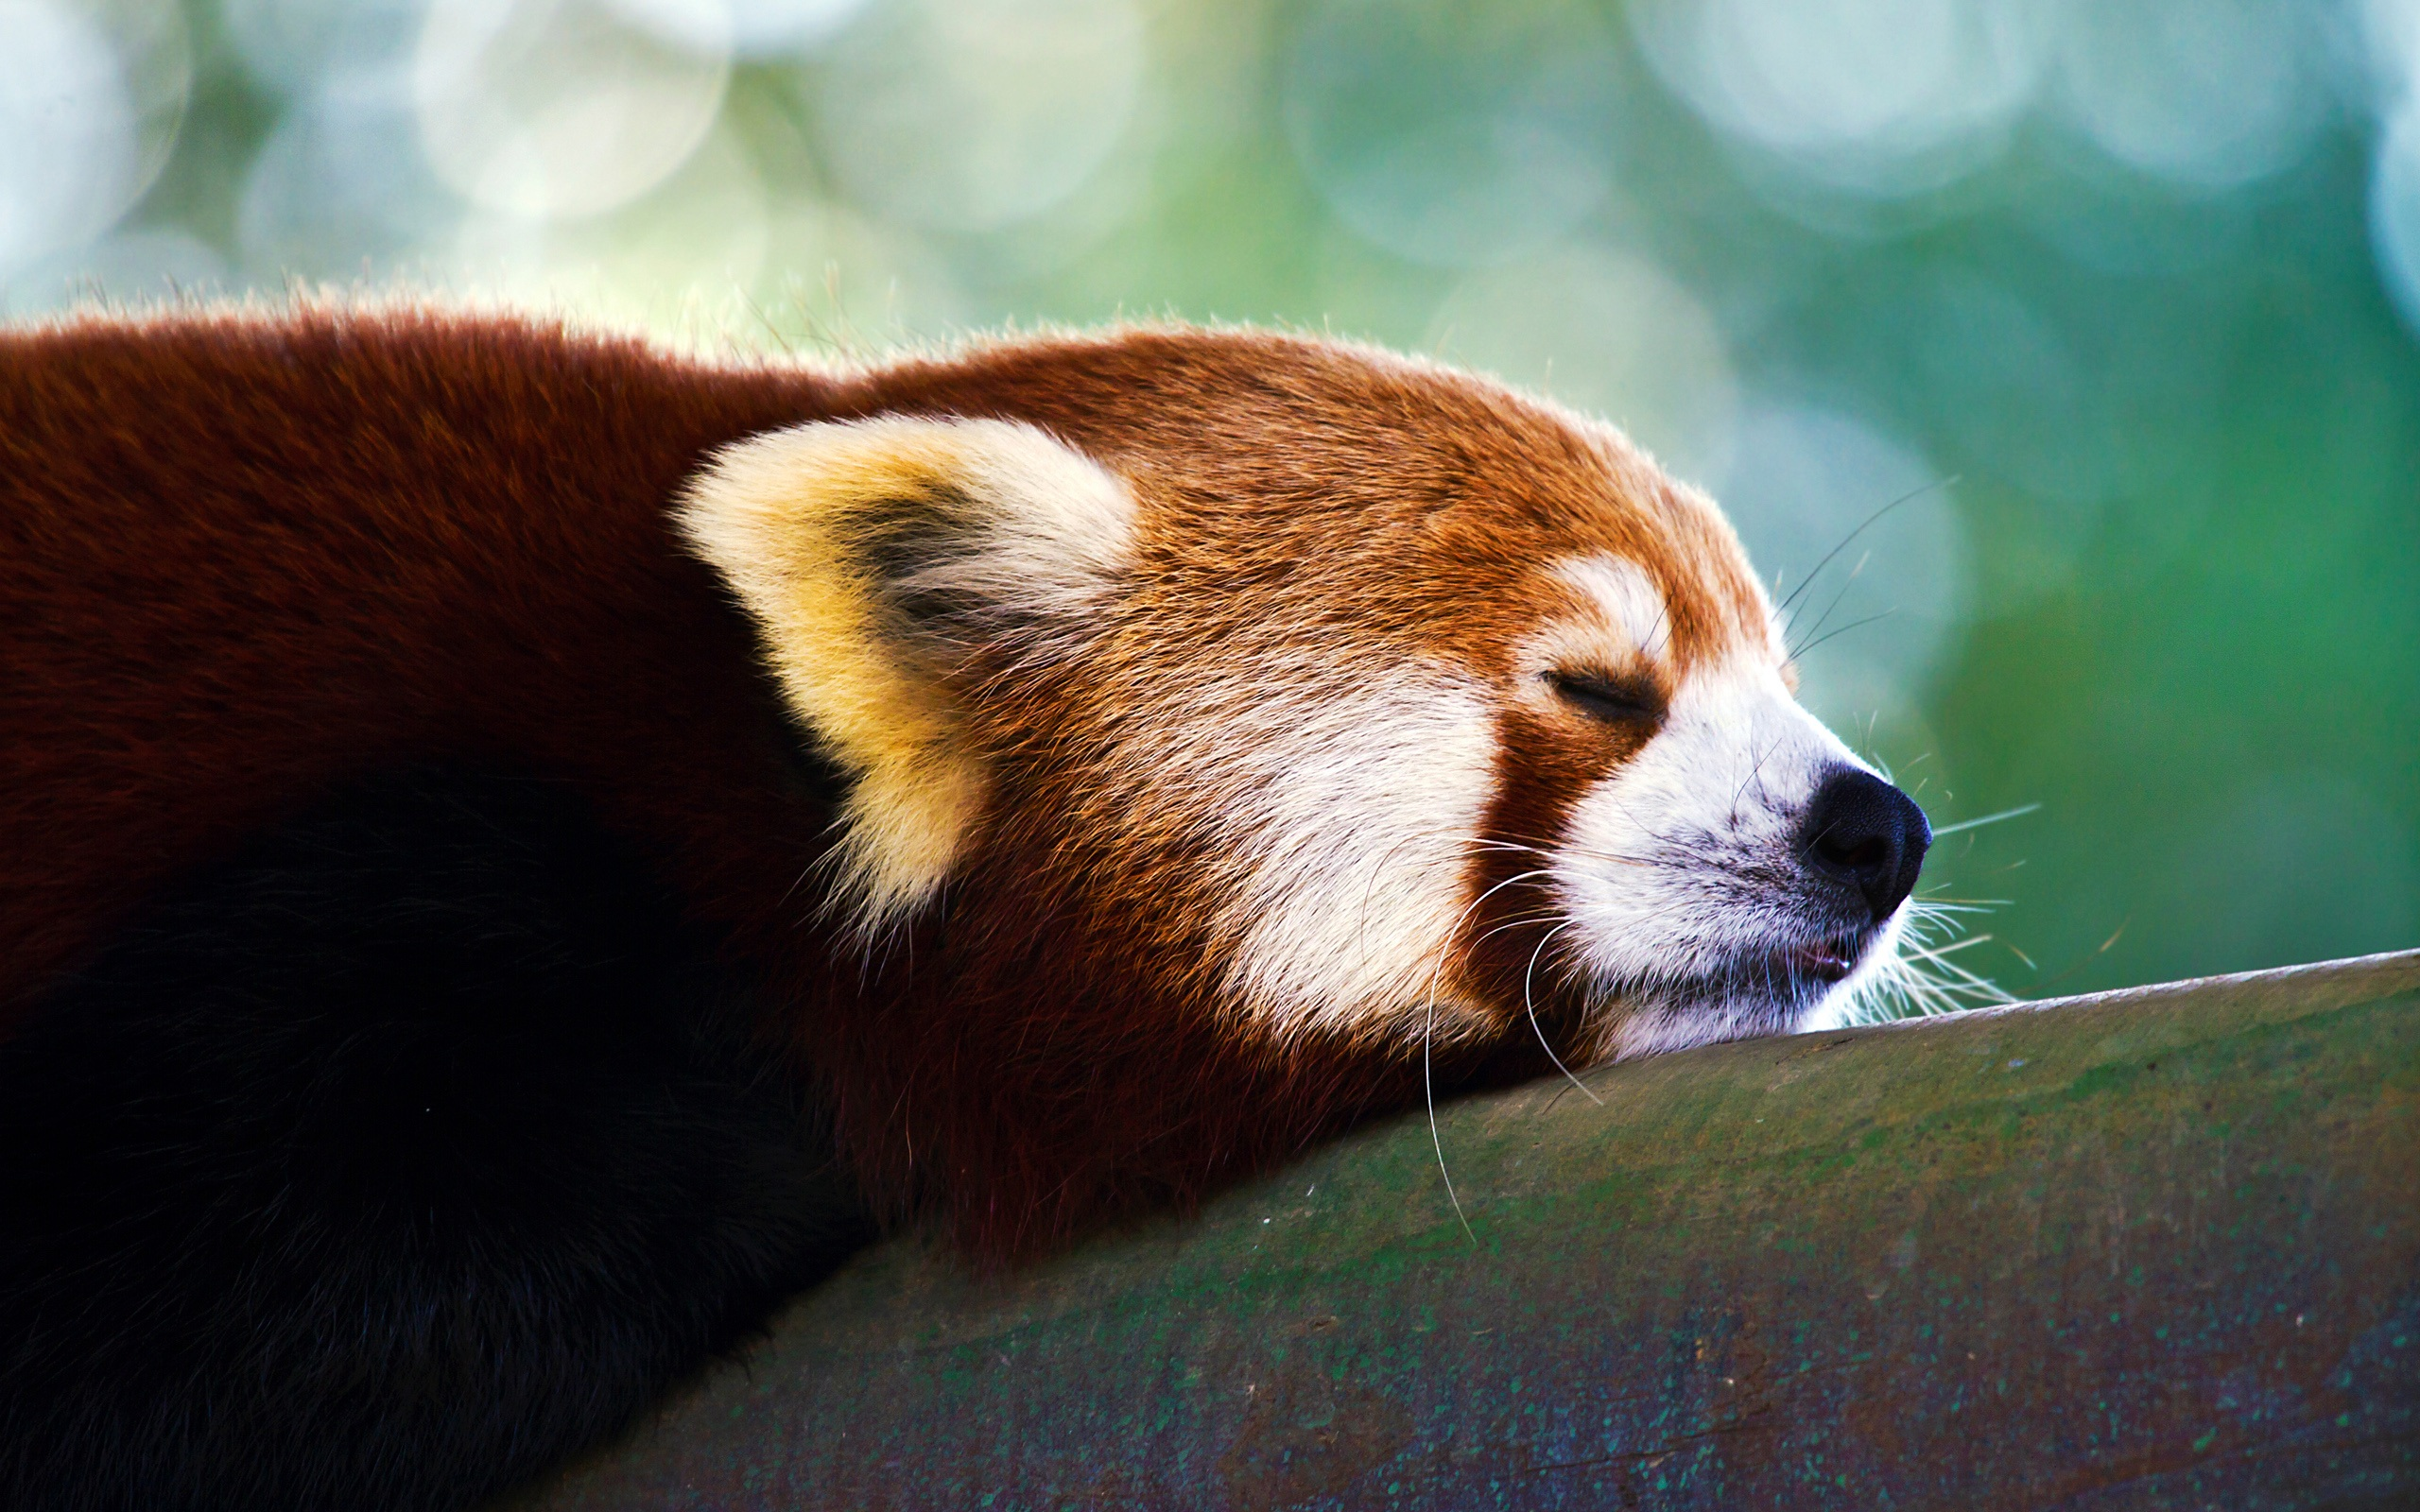 Free Download Cute Baby Wallpaper For Pc Red Panda Pictures Hd Hd Desktop Wallpapers 4k Hd